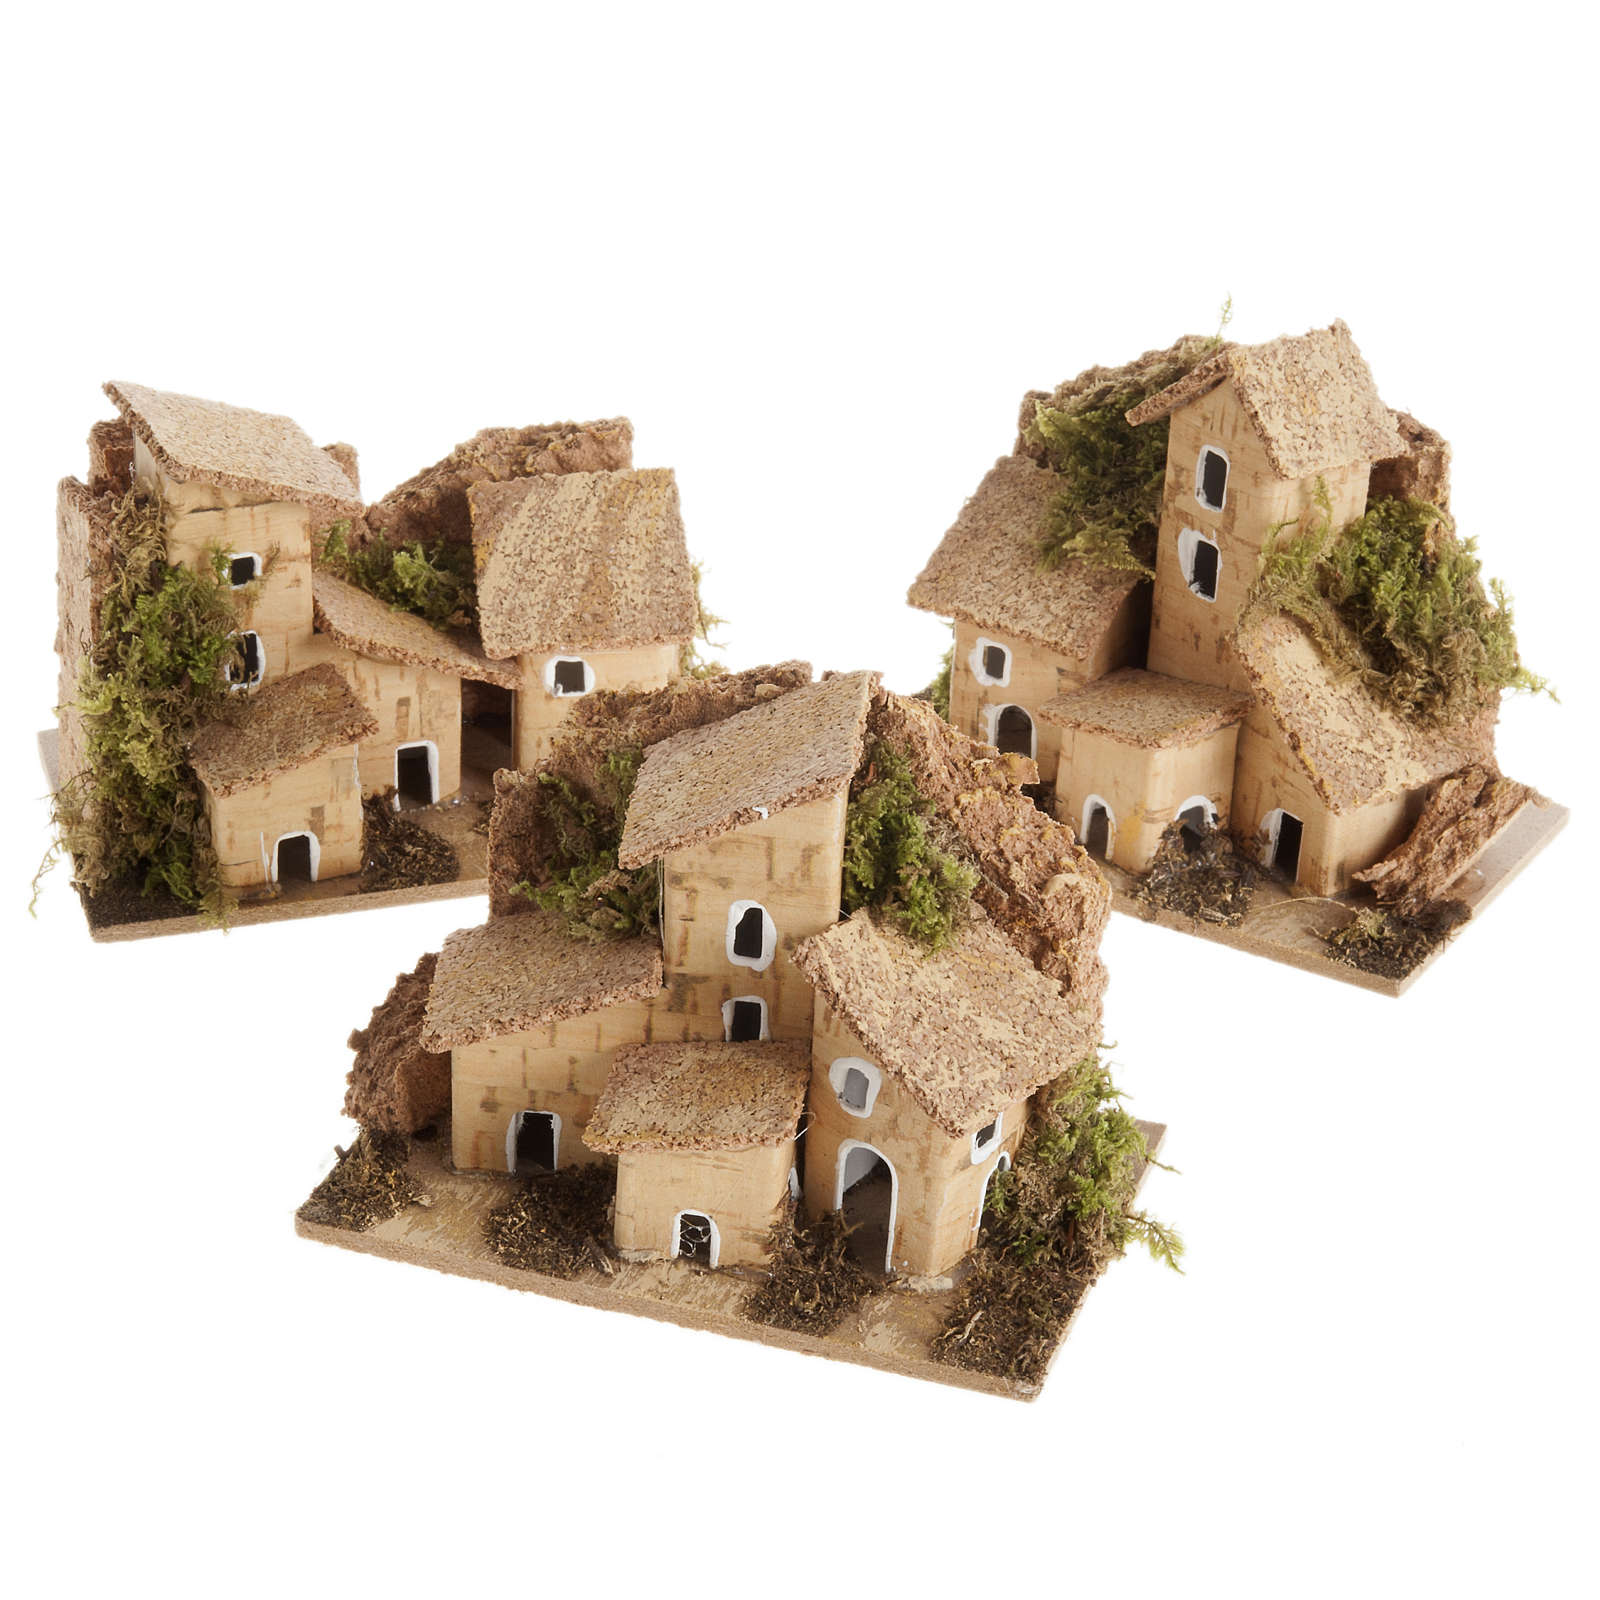 Nativity setting, house in wood with cork roof 4